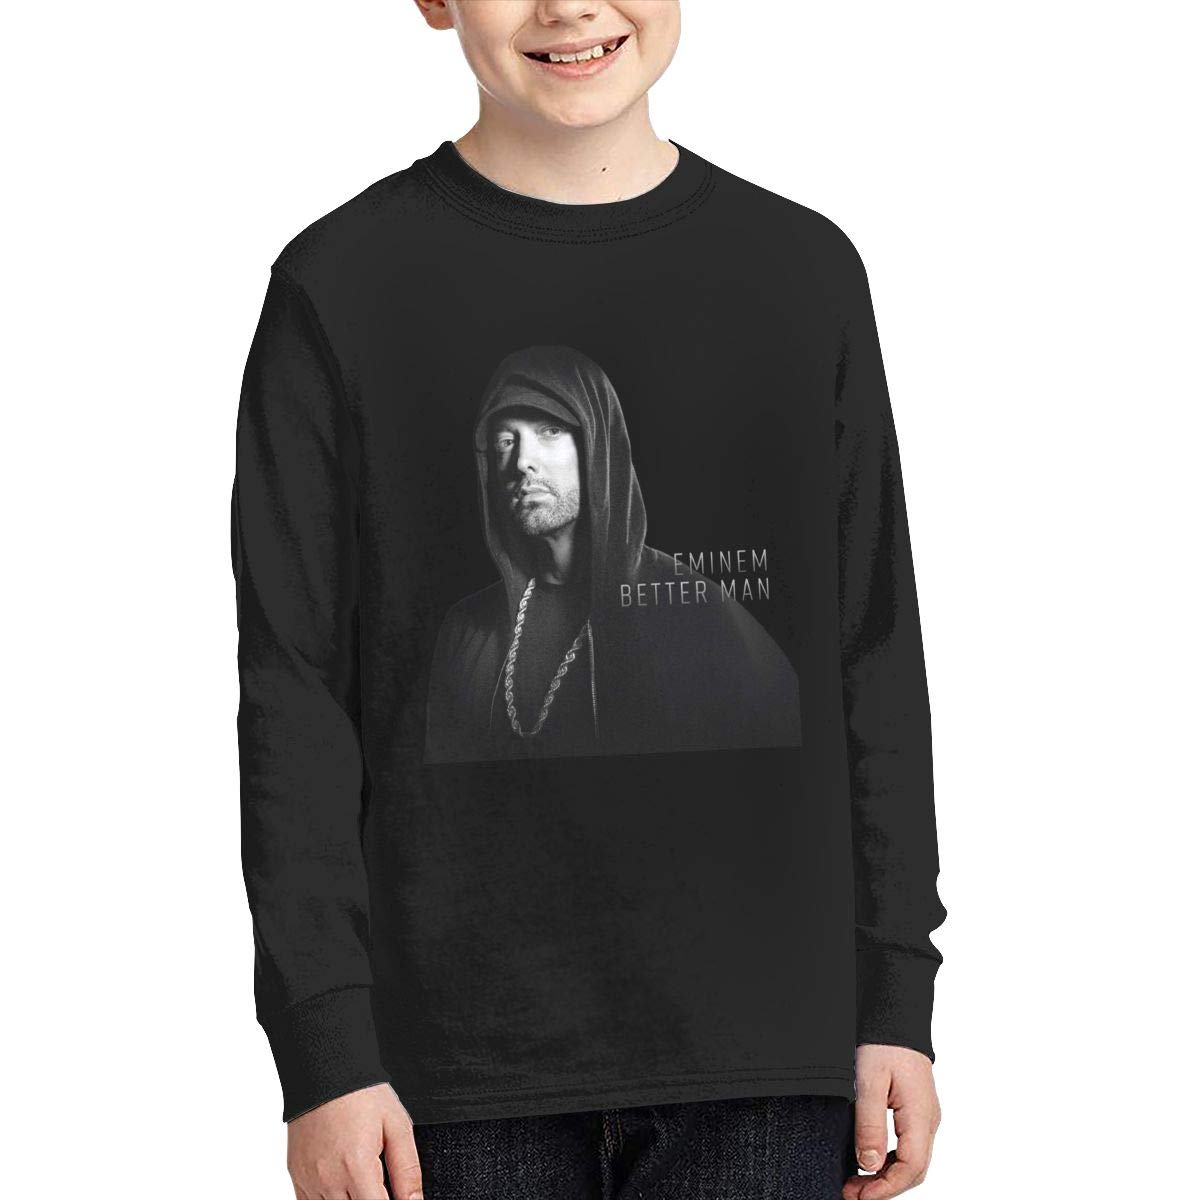 MichaelHazzard Eminem Youth Wearable Long Sleeve Crewneck Tee T-Shirt for Boys and Girls